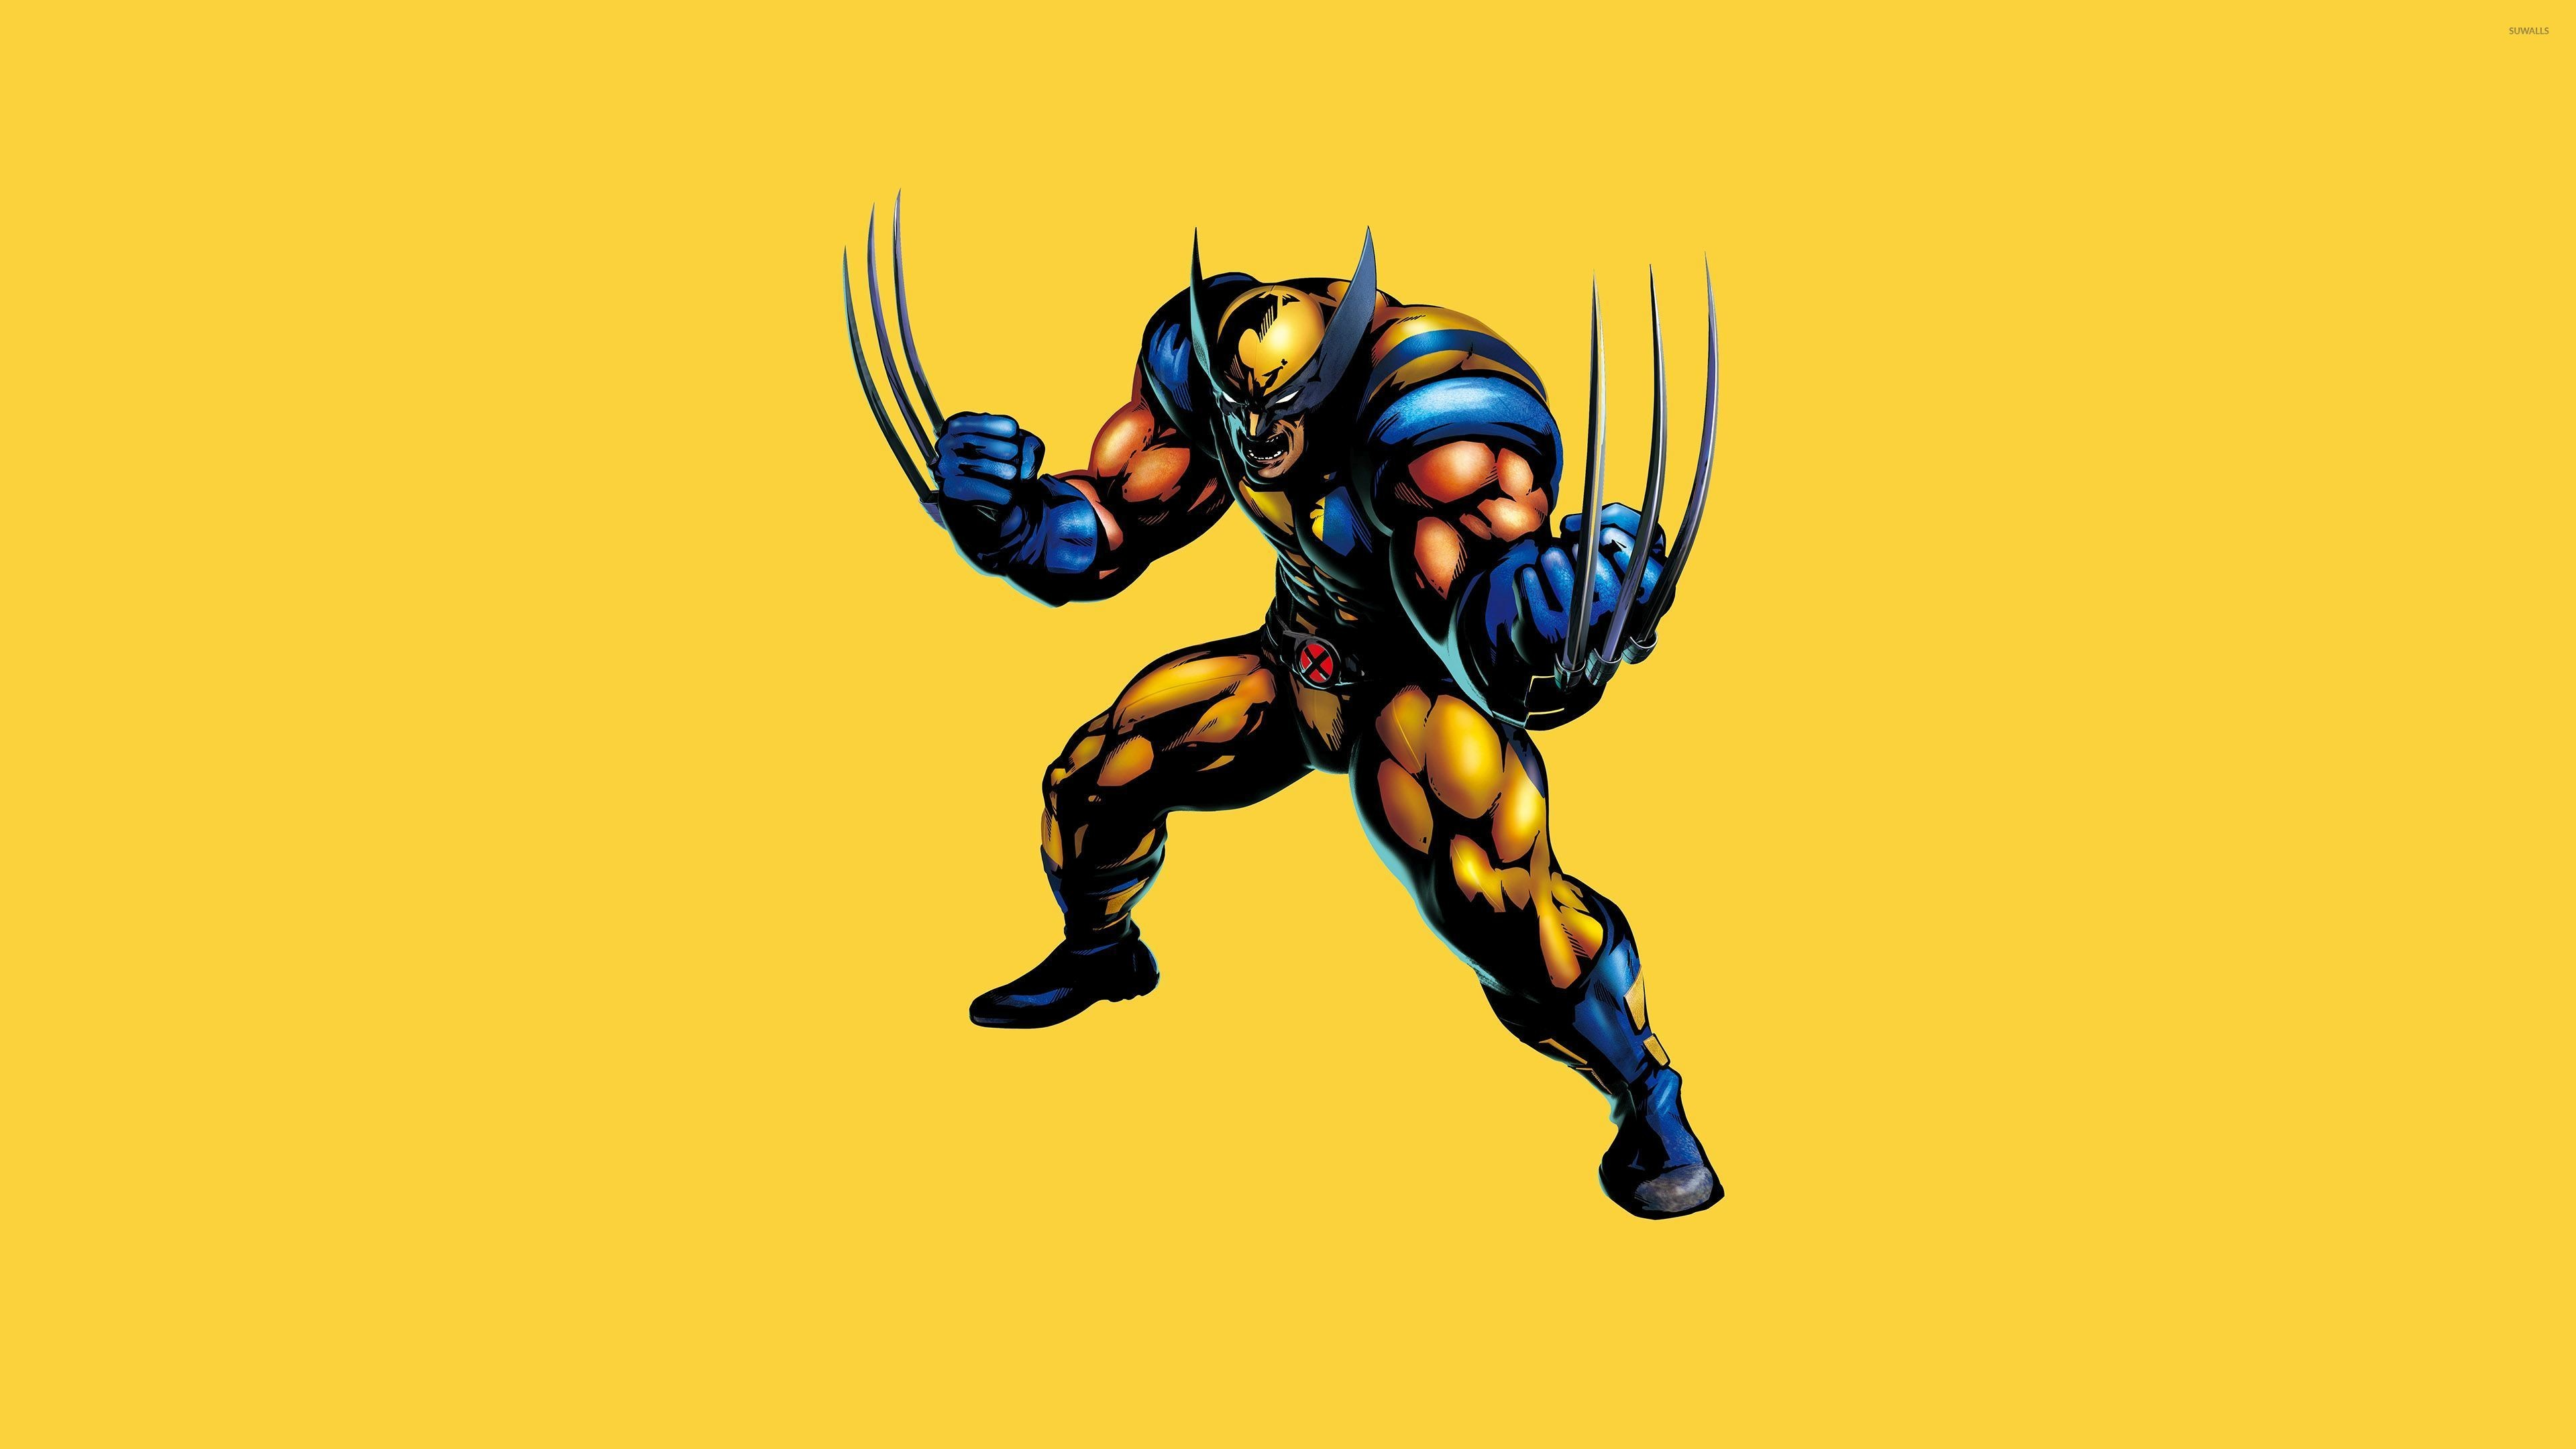 Res: 3840x2160, Wolverine ready for a fight wallpaper